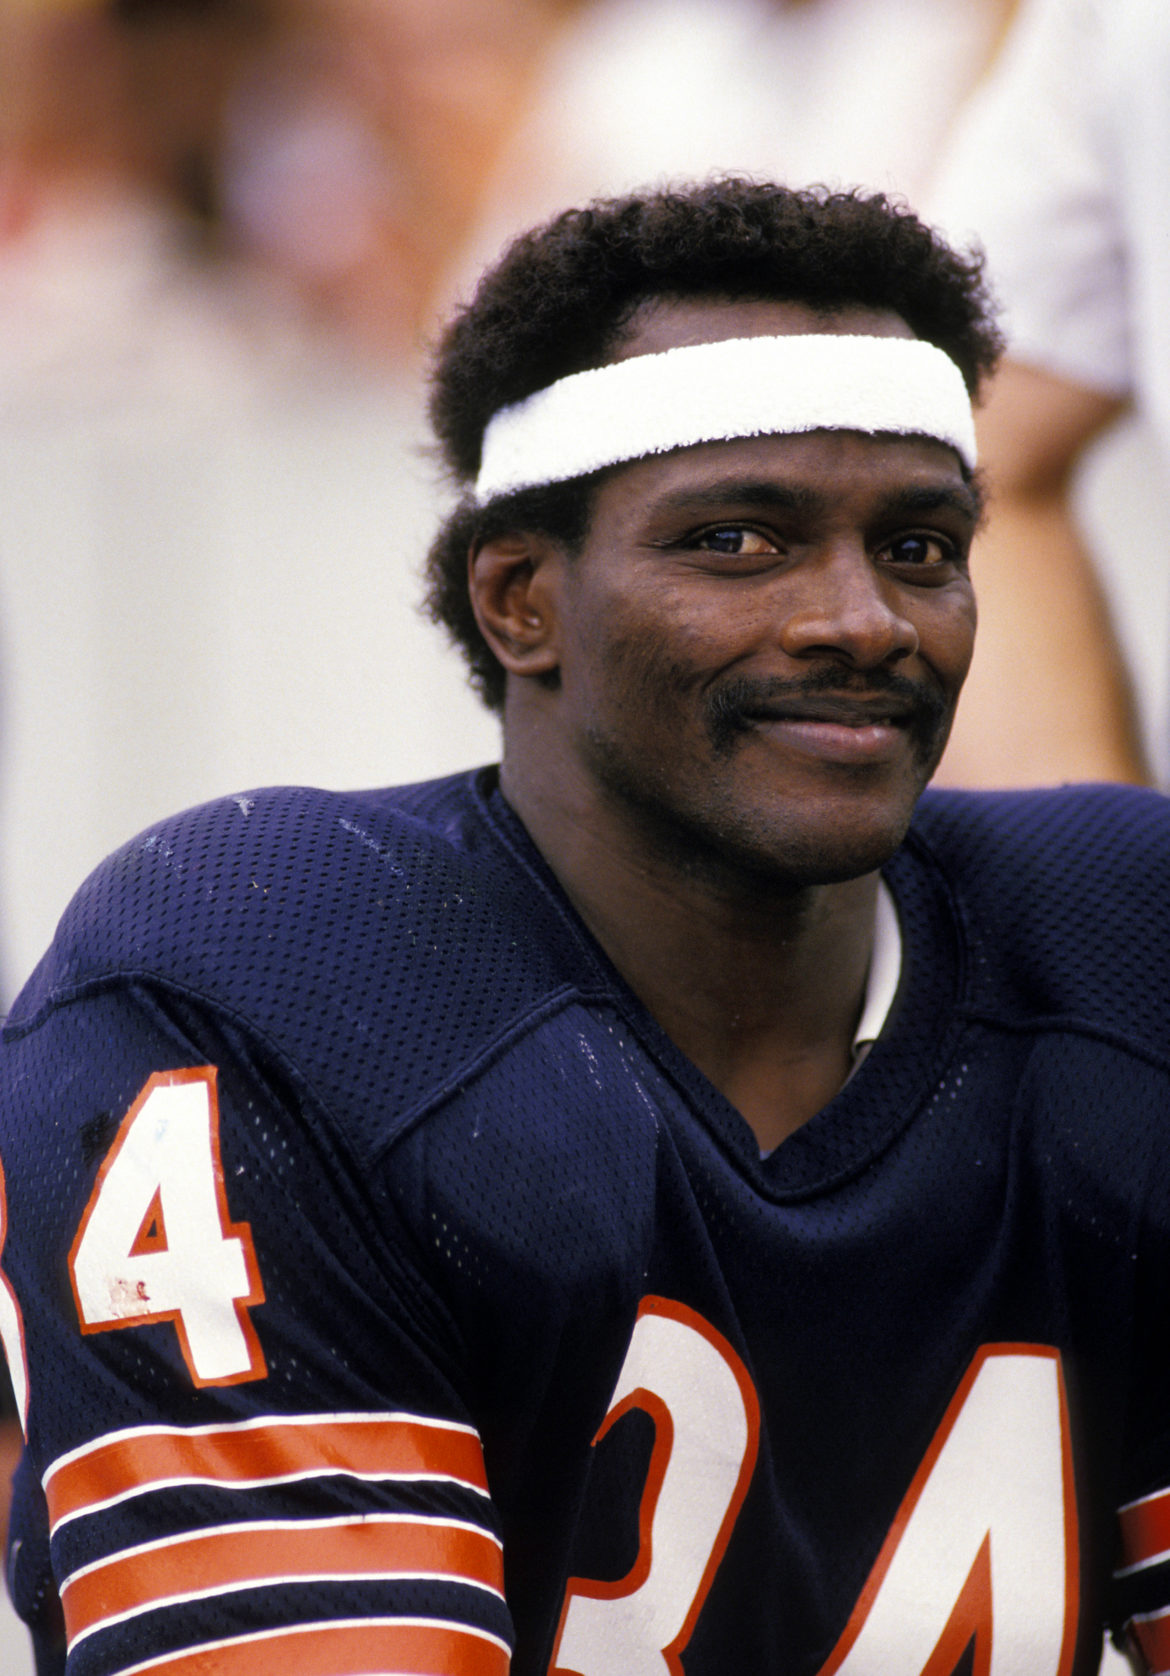 Twenty years later, still hard to believe Walter Payton – 'Sweetness' – is gone